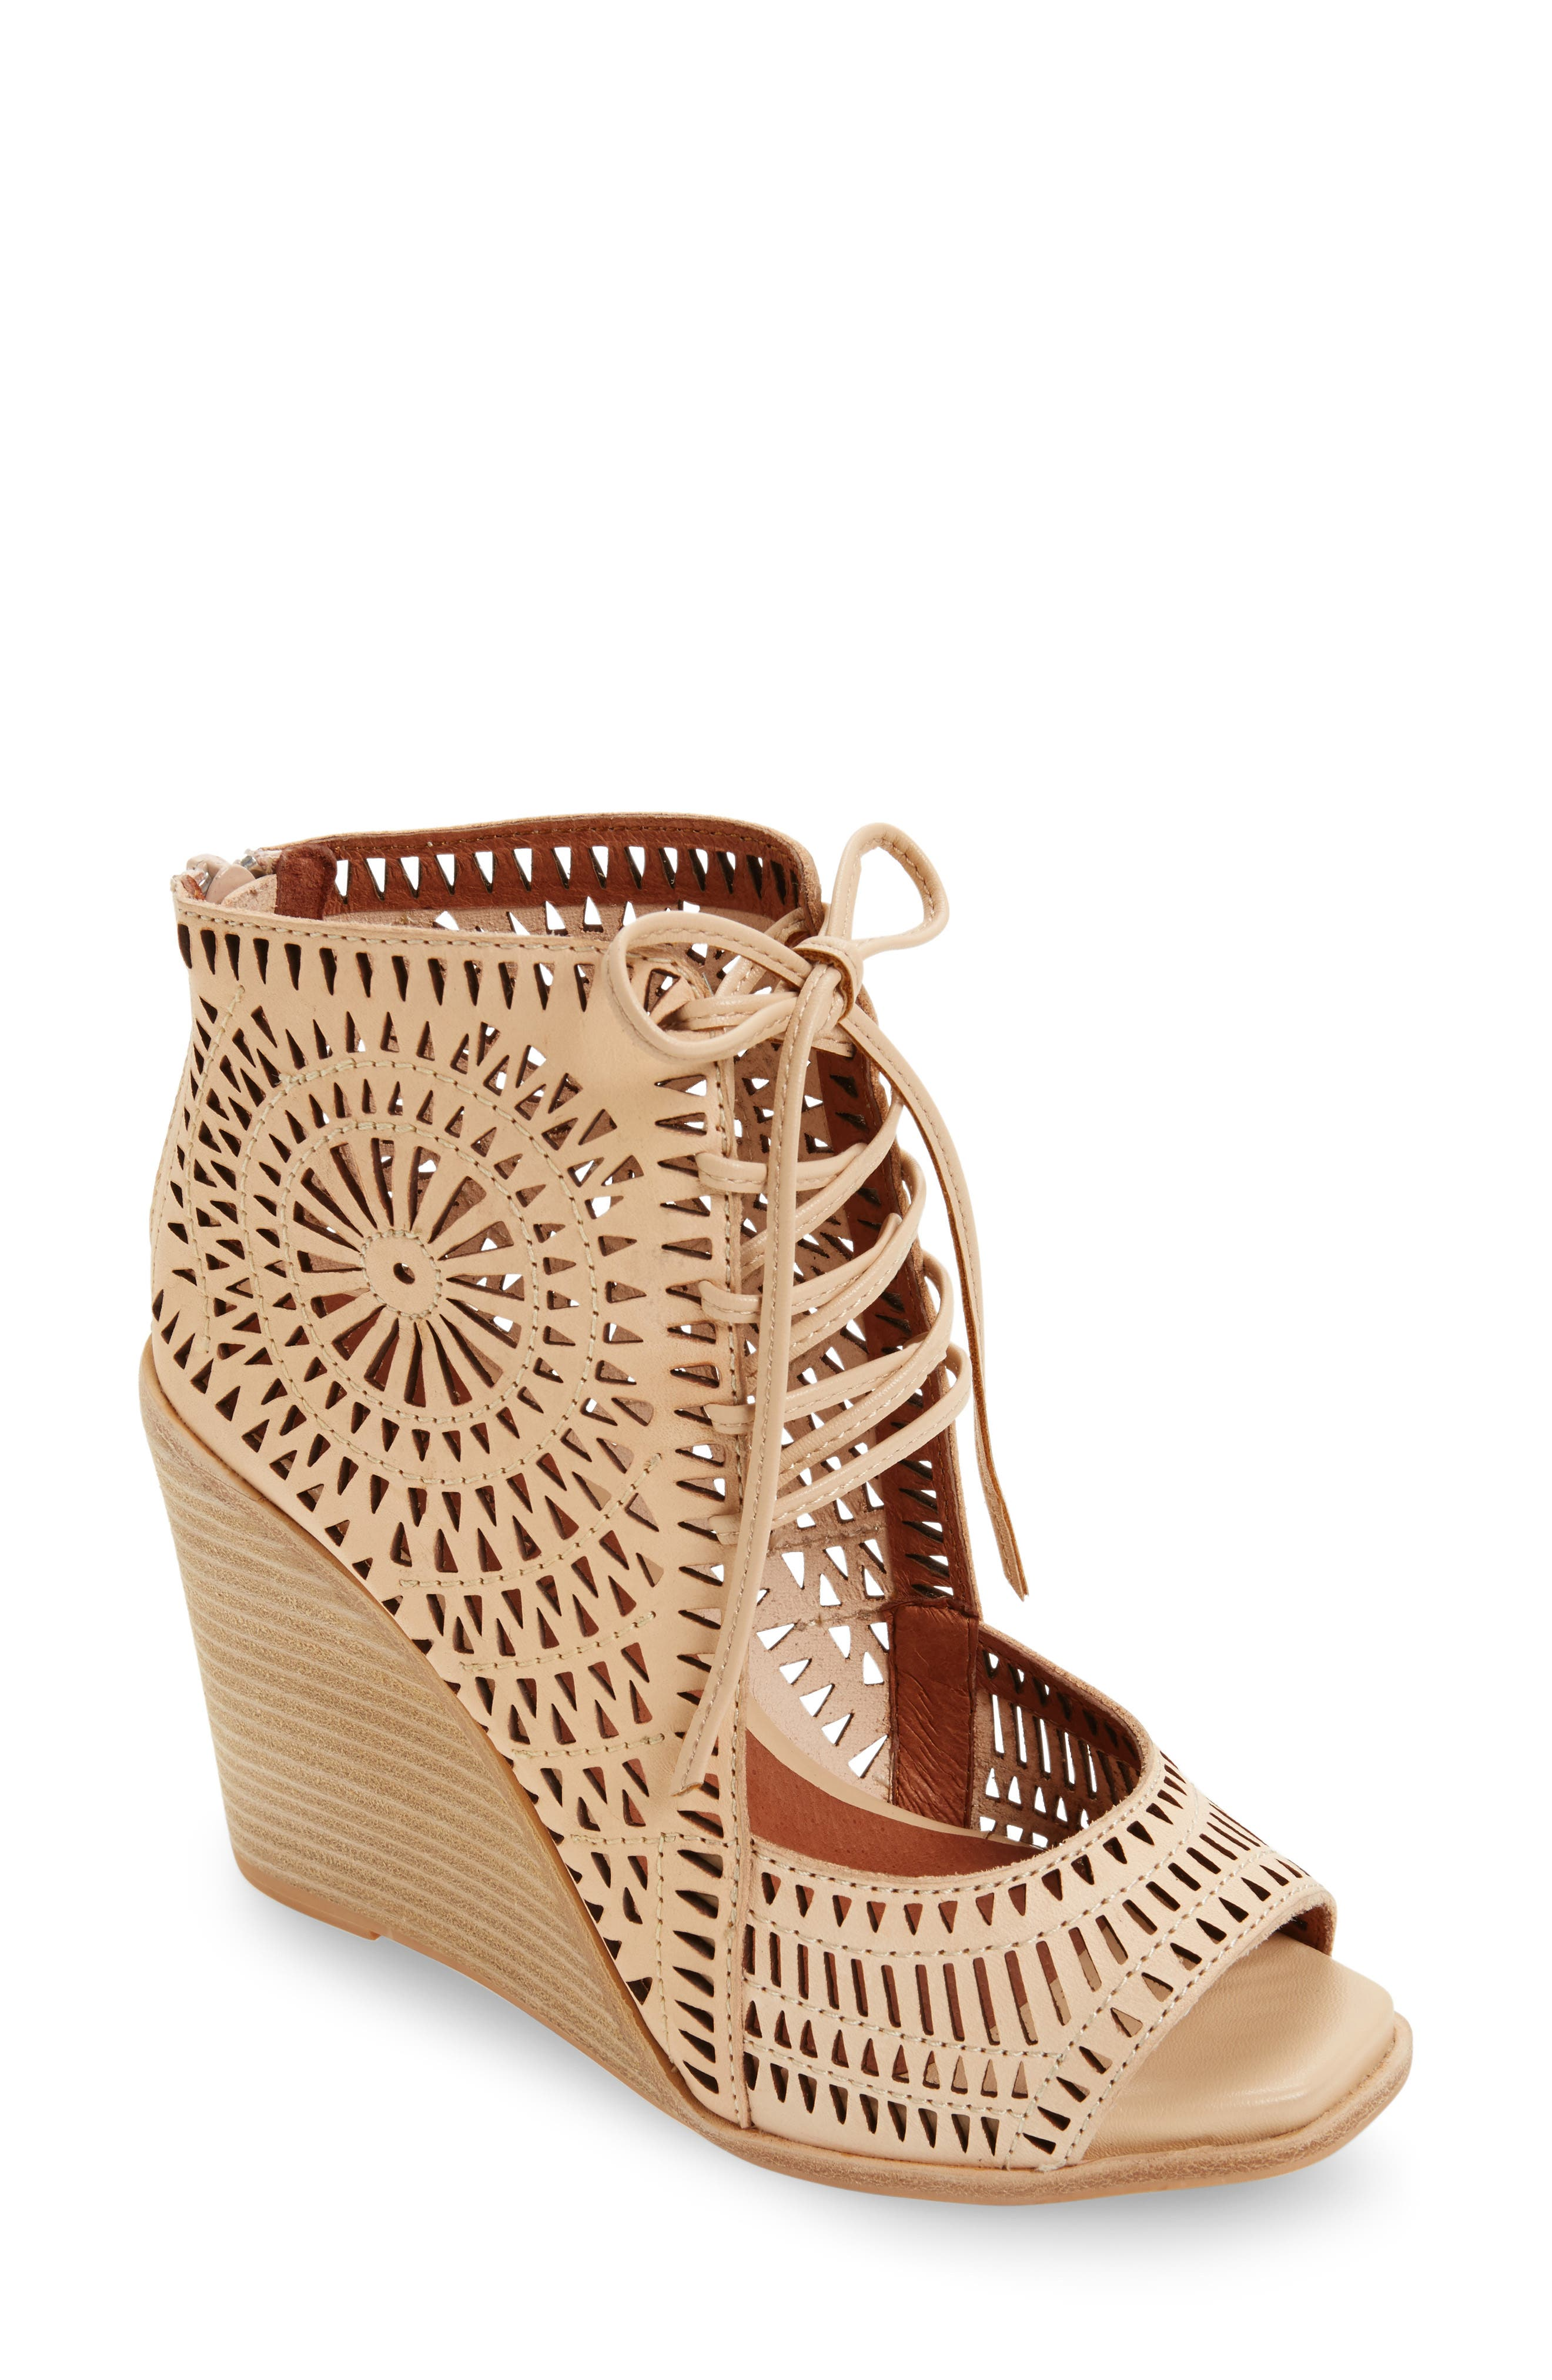 Alternate Image 1 Selected - Jeffrey Campbell Rayos Perforated Wedge Sandal (Women)